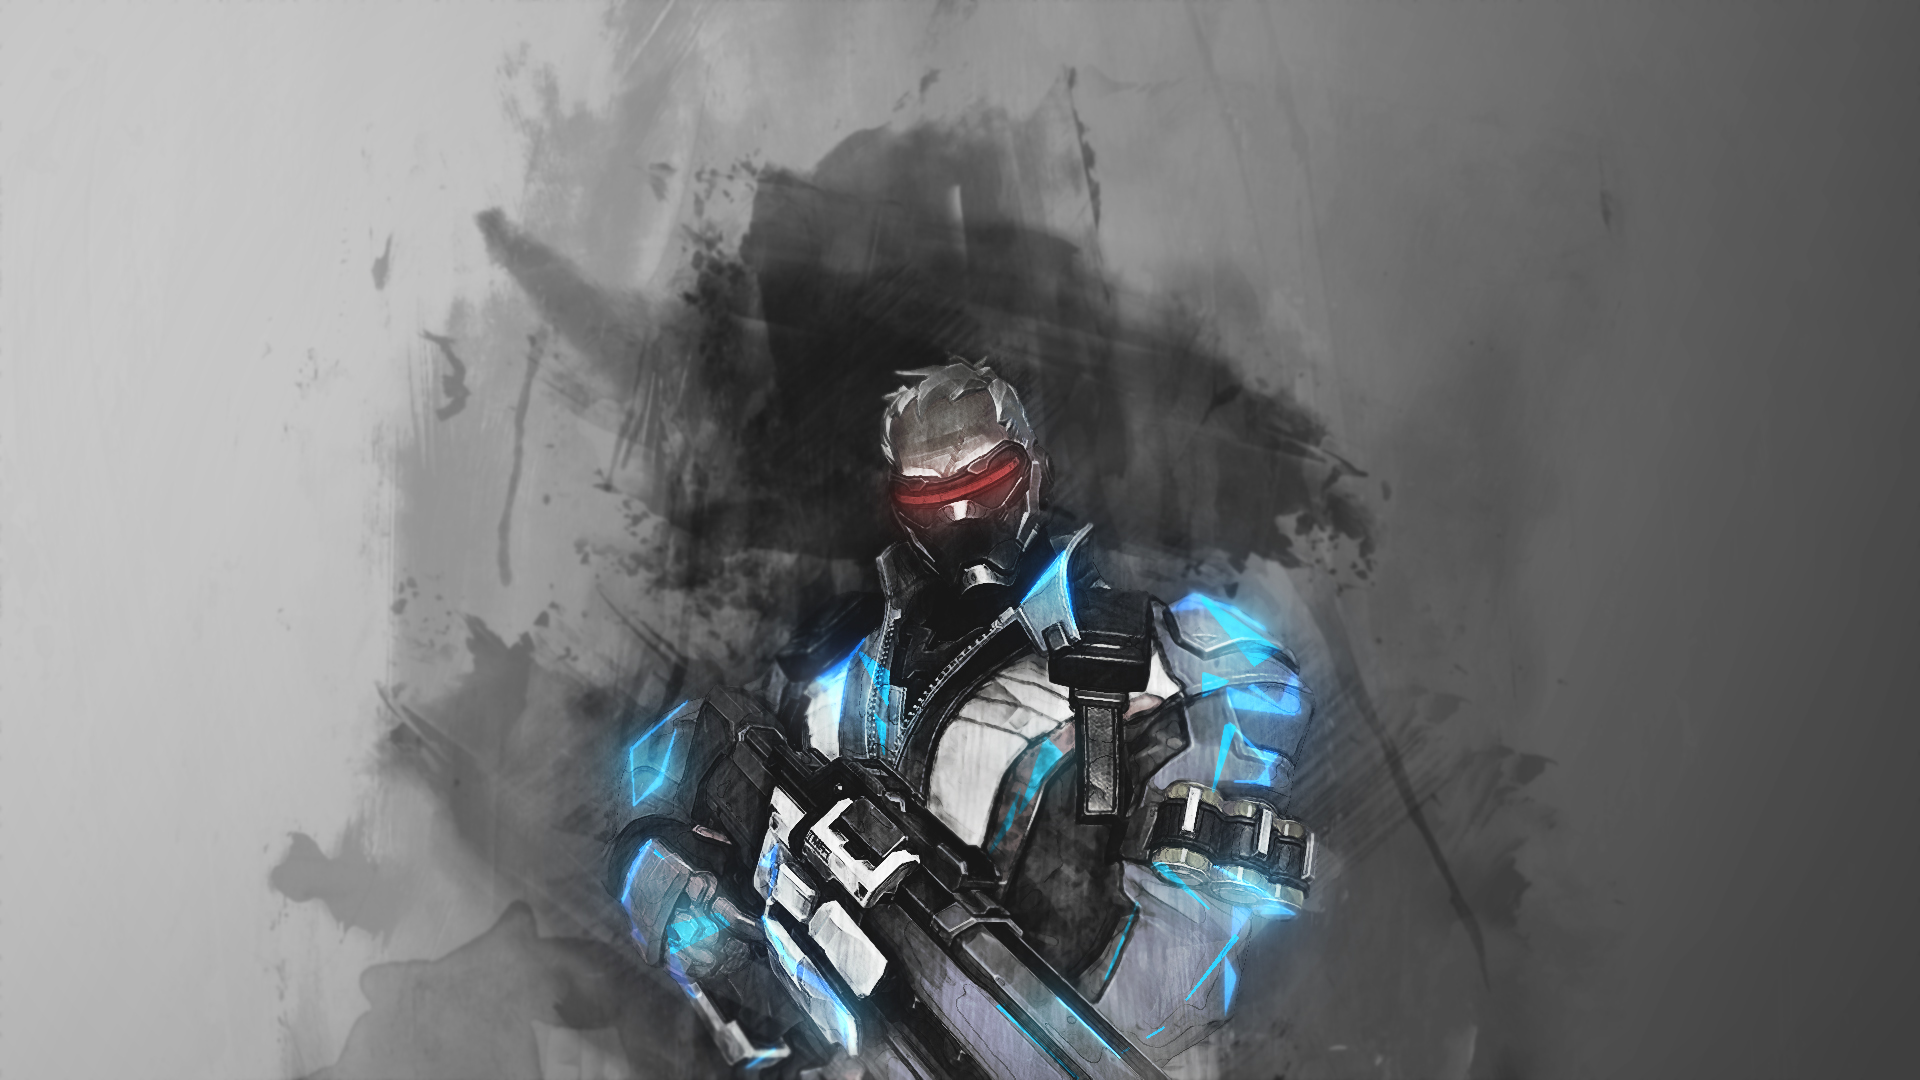 Soldier 76 Overwatch Wallpaper 670122472 on coolest iphone wallpapers